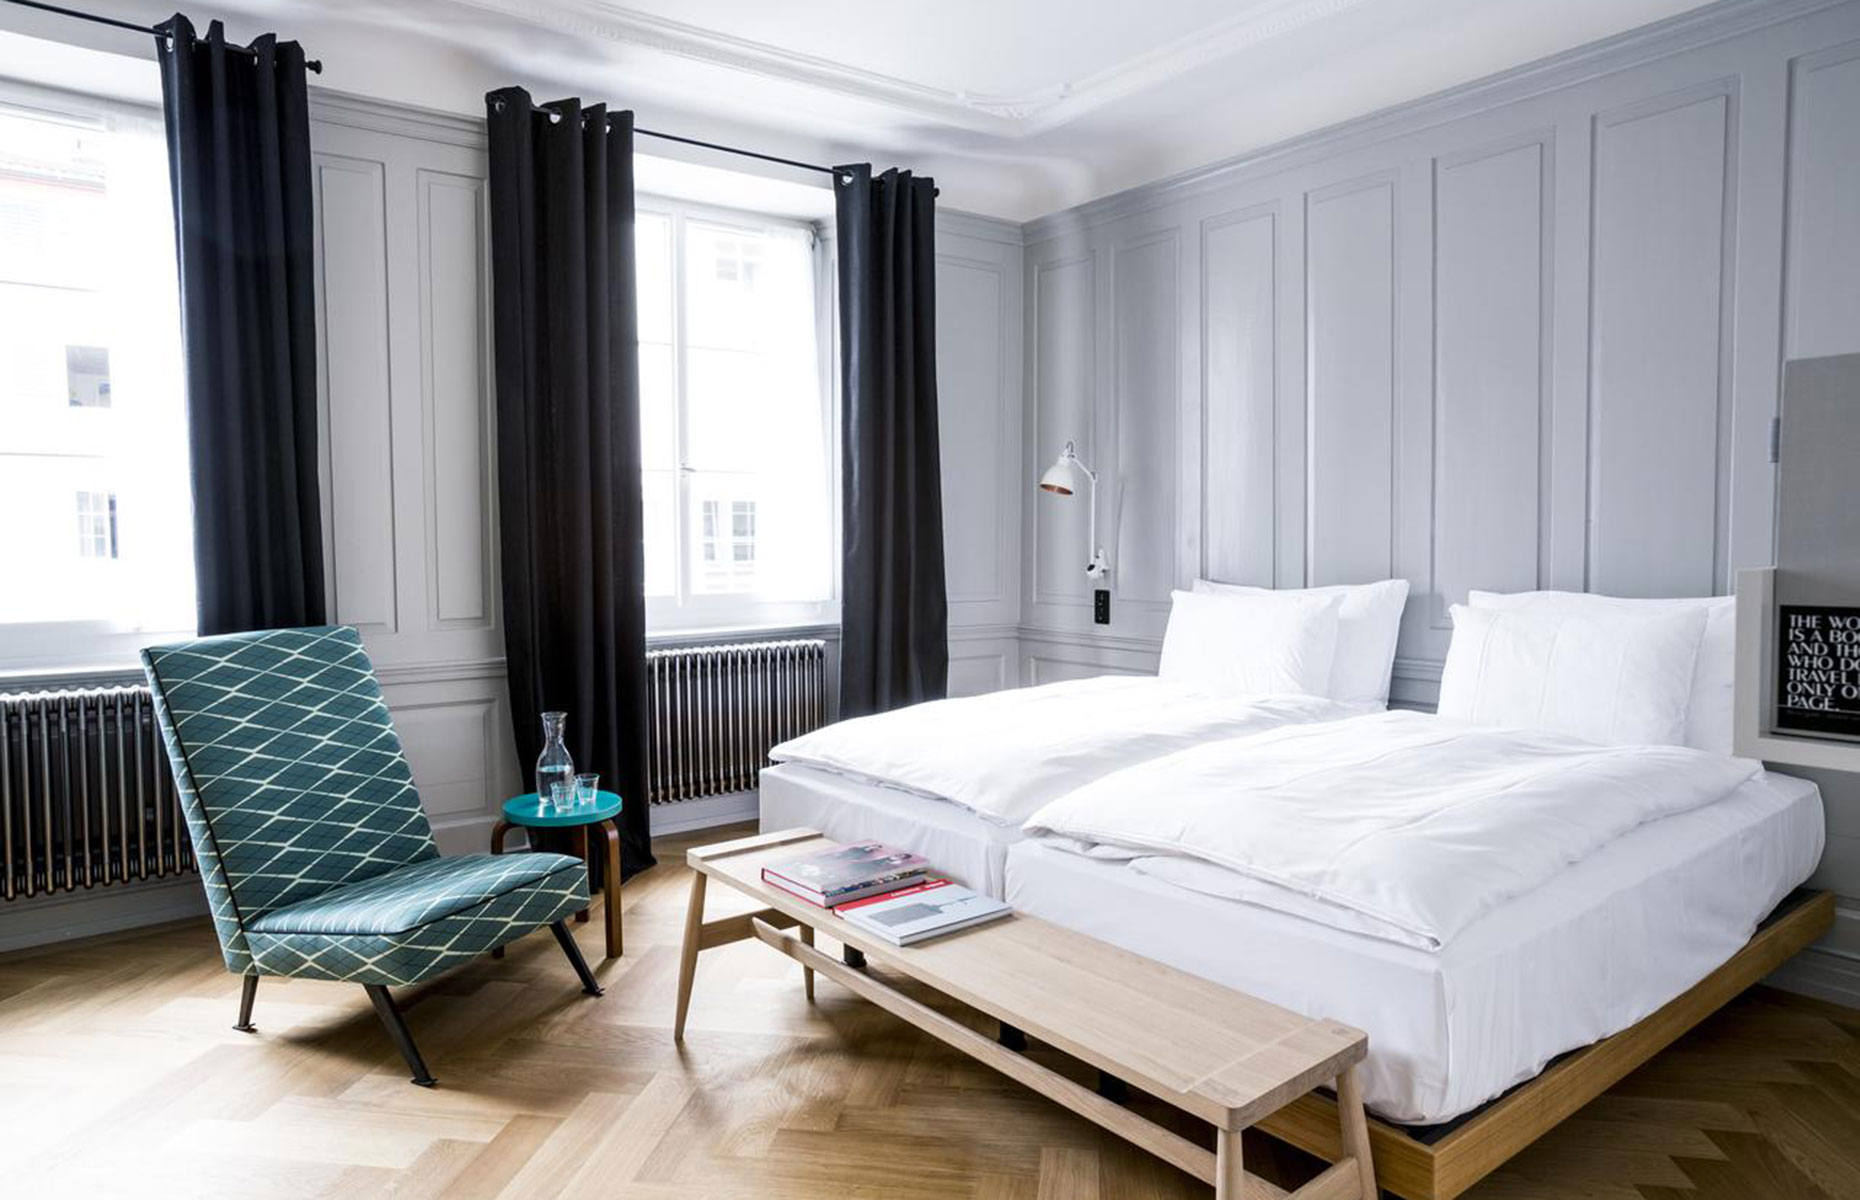 Marktgasse Hotel, in the Old Town of Zurich is a boutique hotel in the city